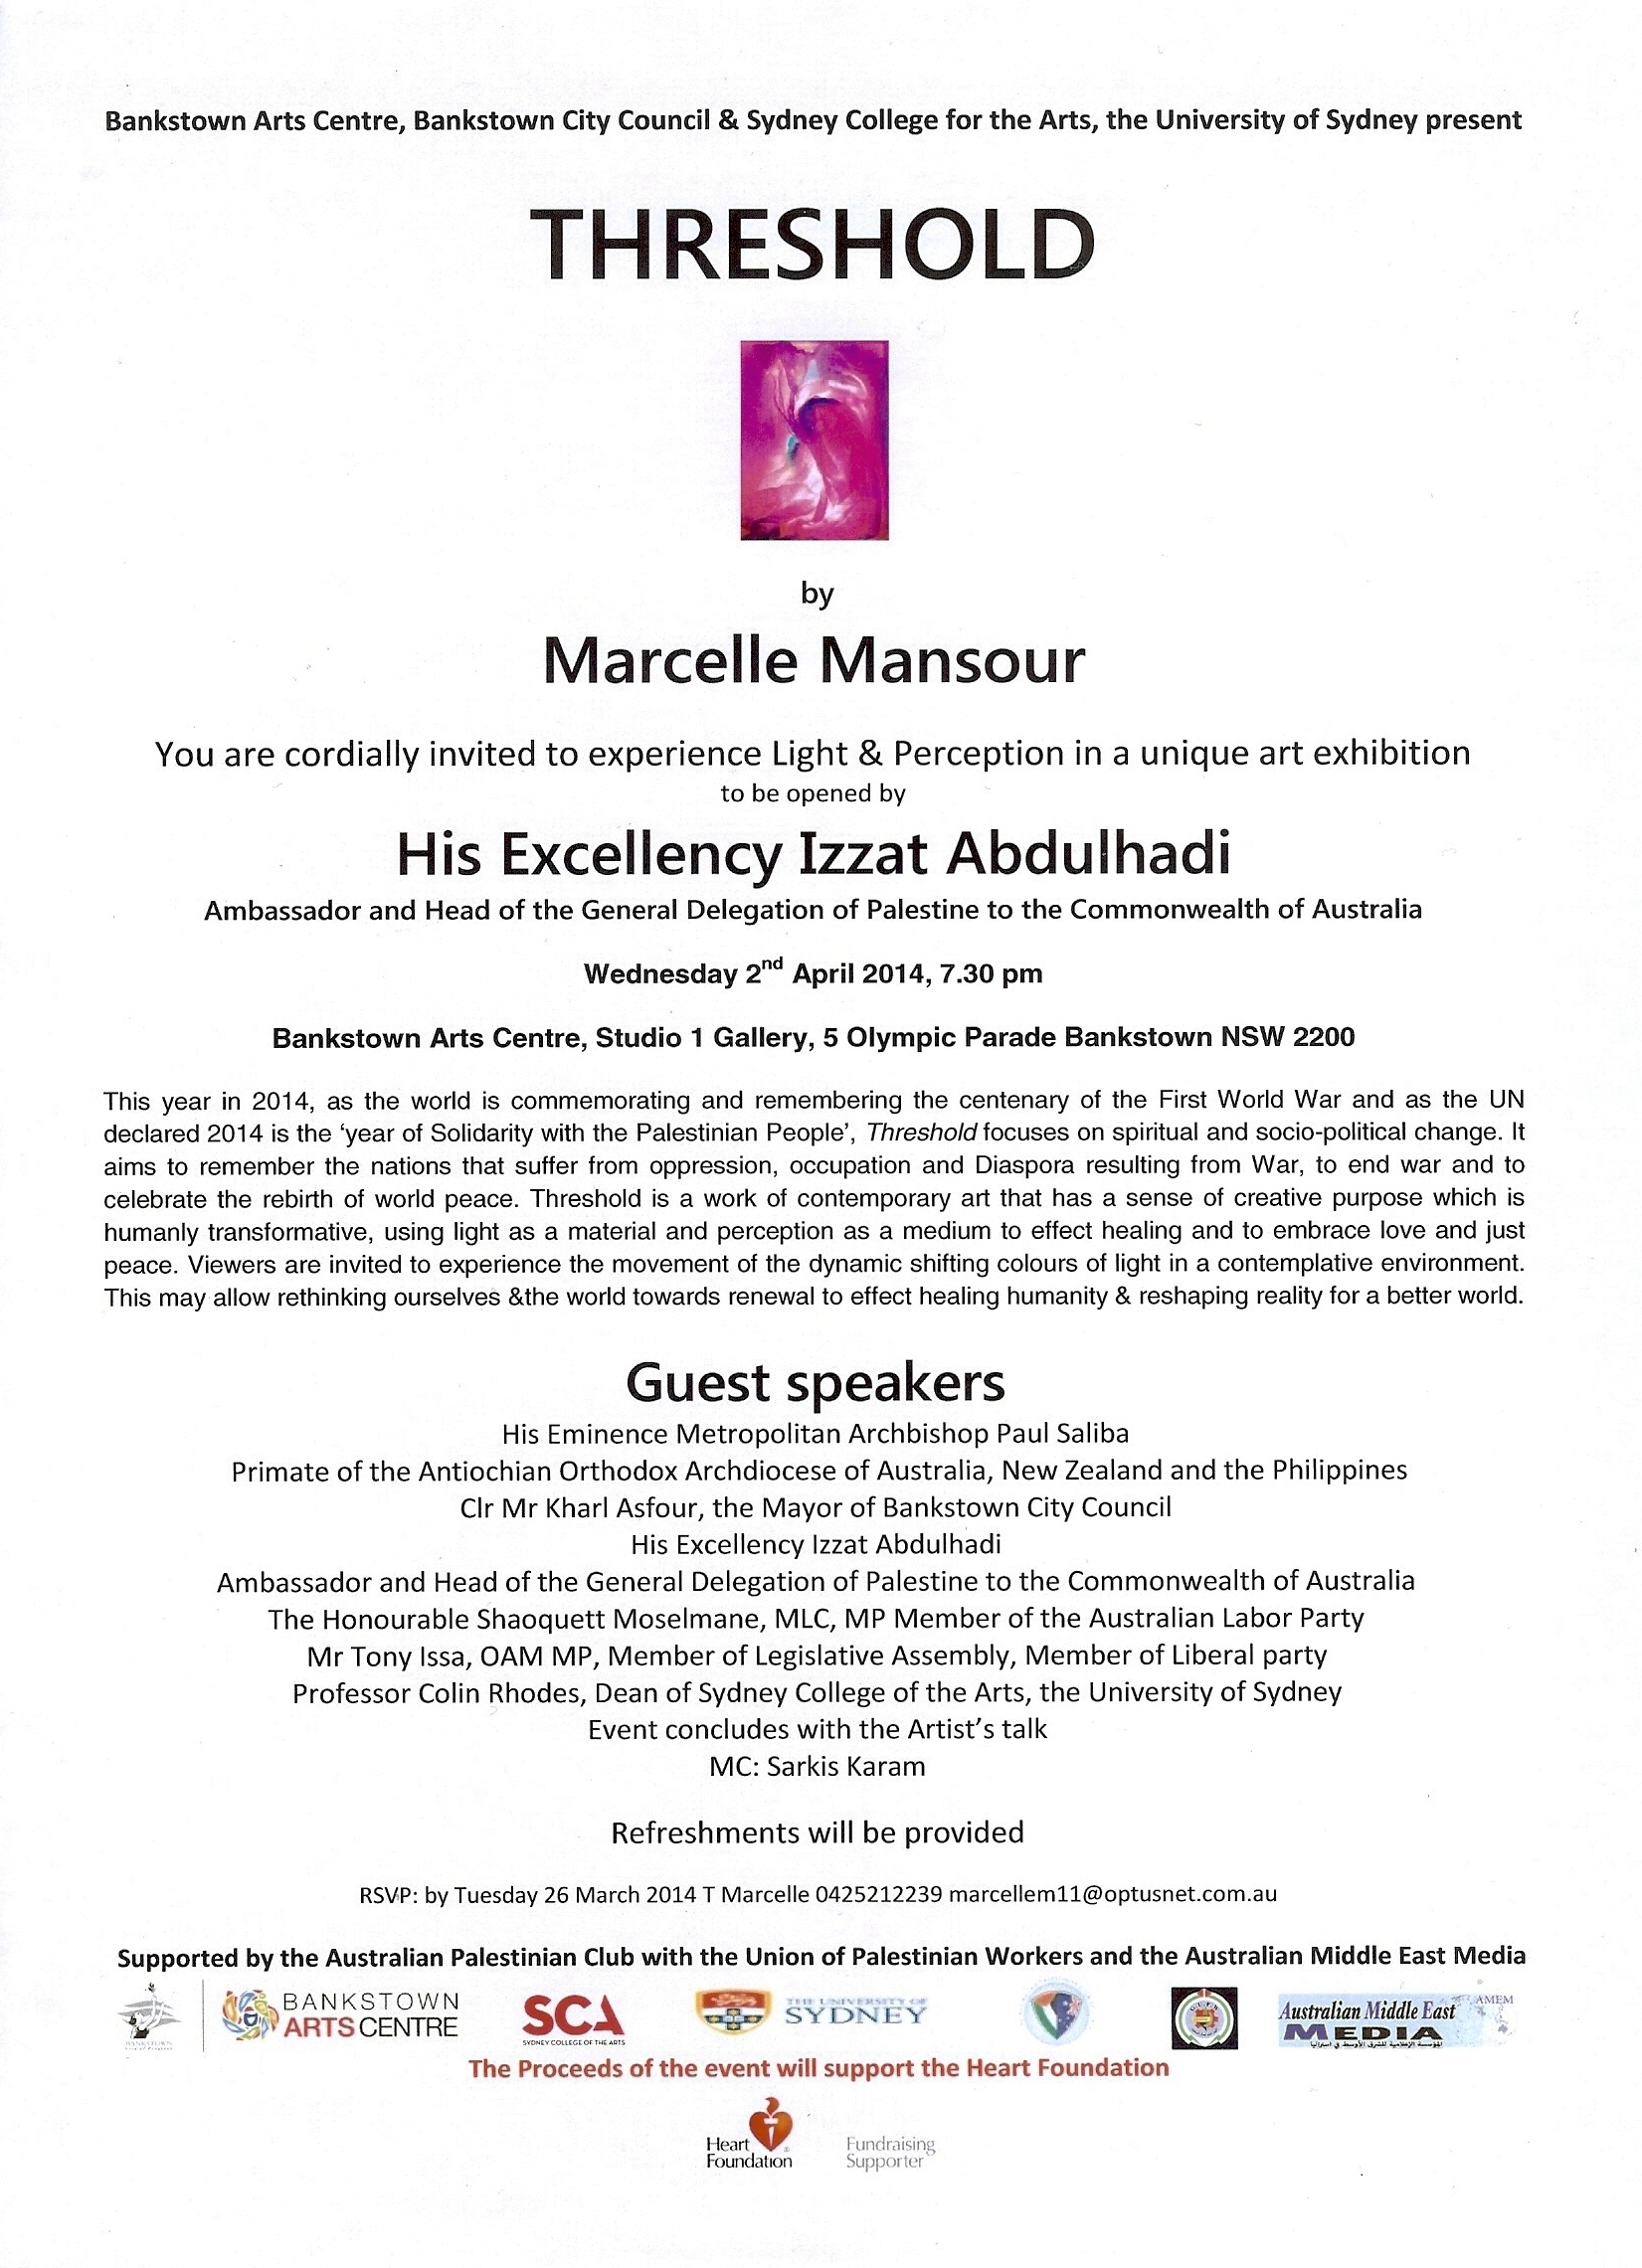 News marcelle mansour invitation to attend threshold solo art exhibition at bankstown arts centre april 2014 stopboris Images